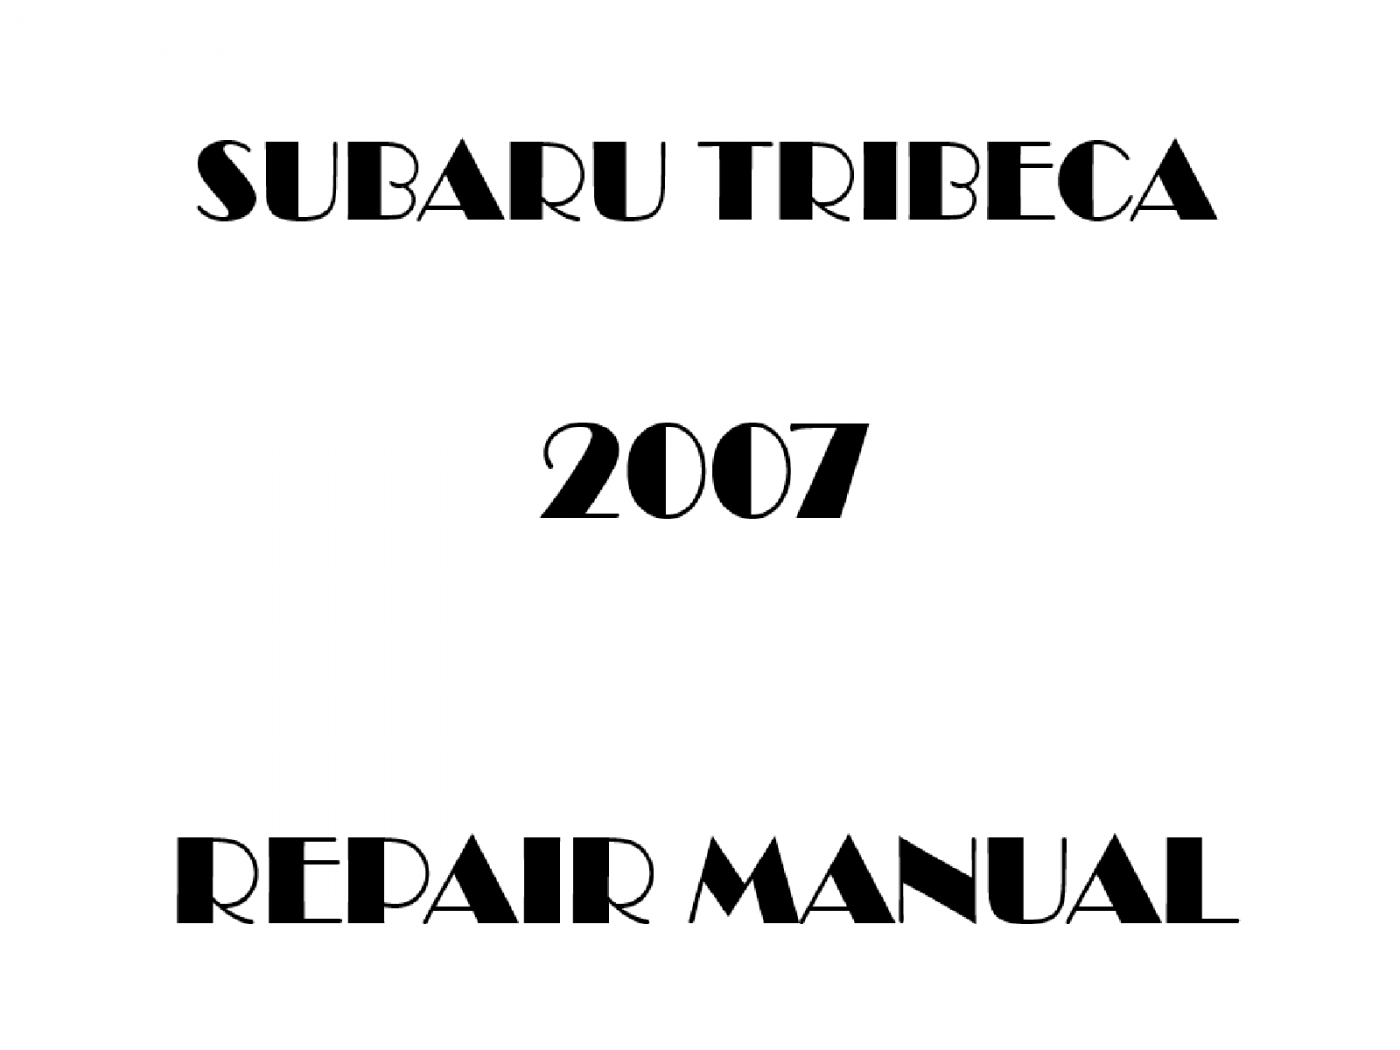 2007 Subaru Tribeca repair manual